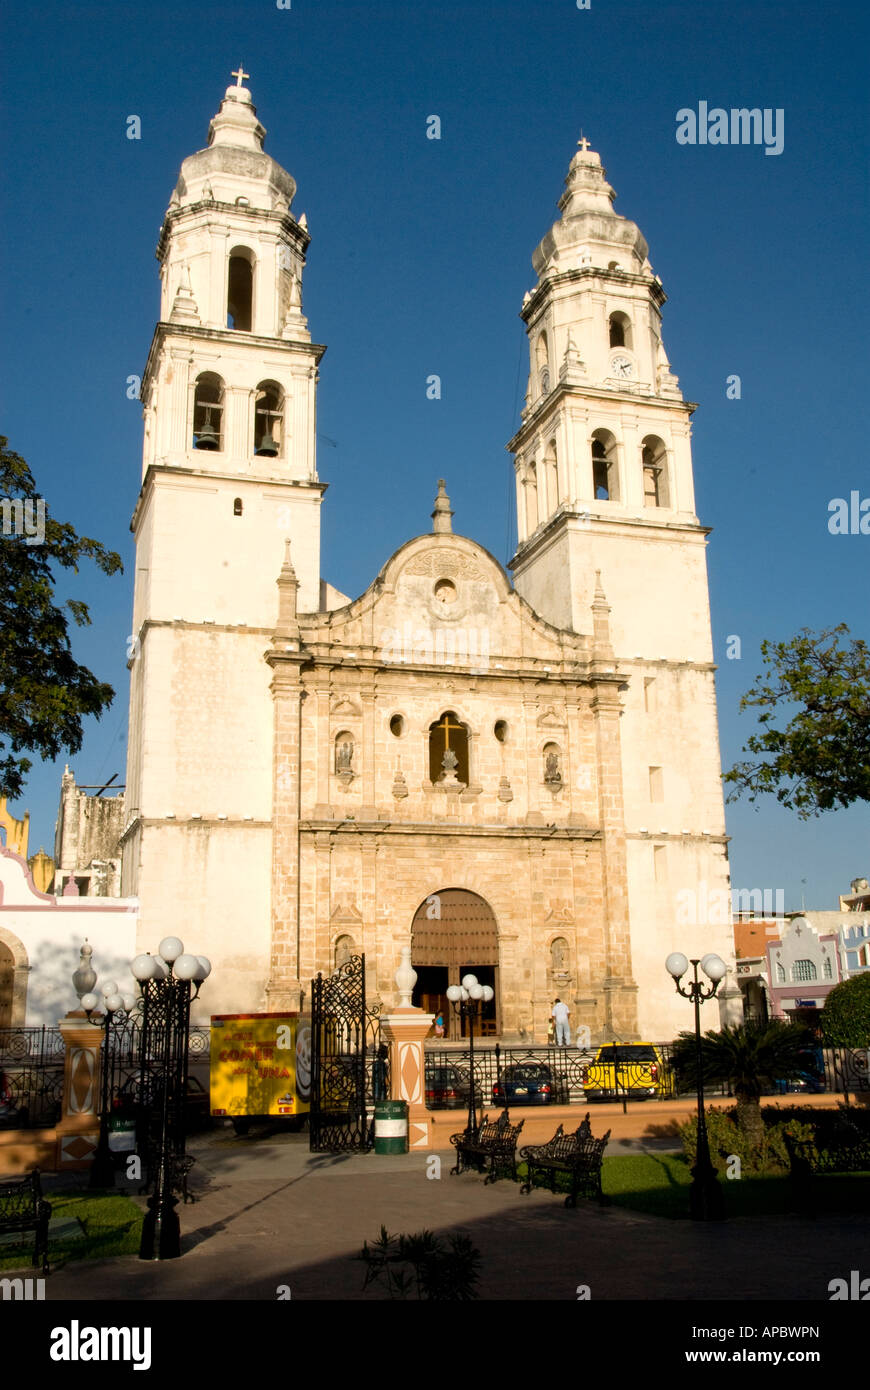 Colonial style architecture of mexico stock photo royalty for Mexican style architecture